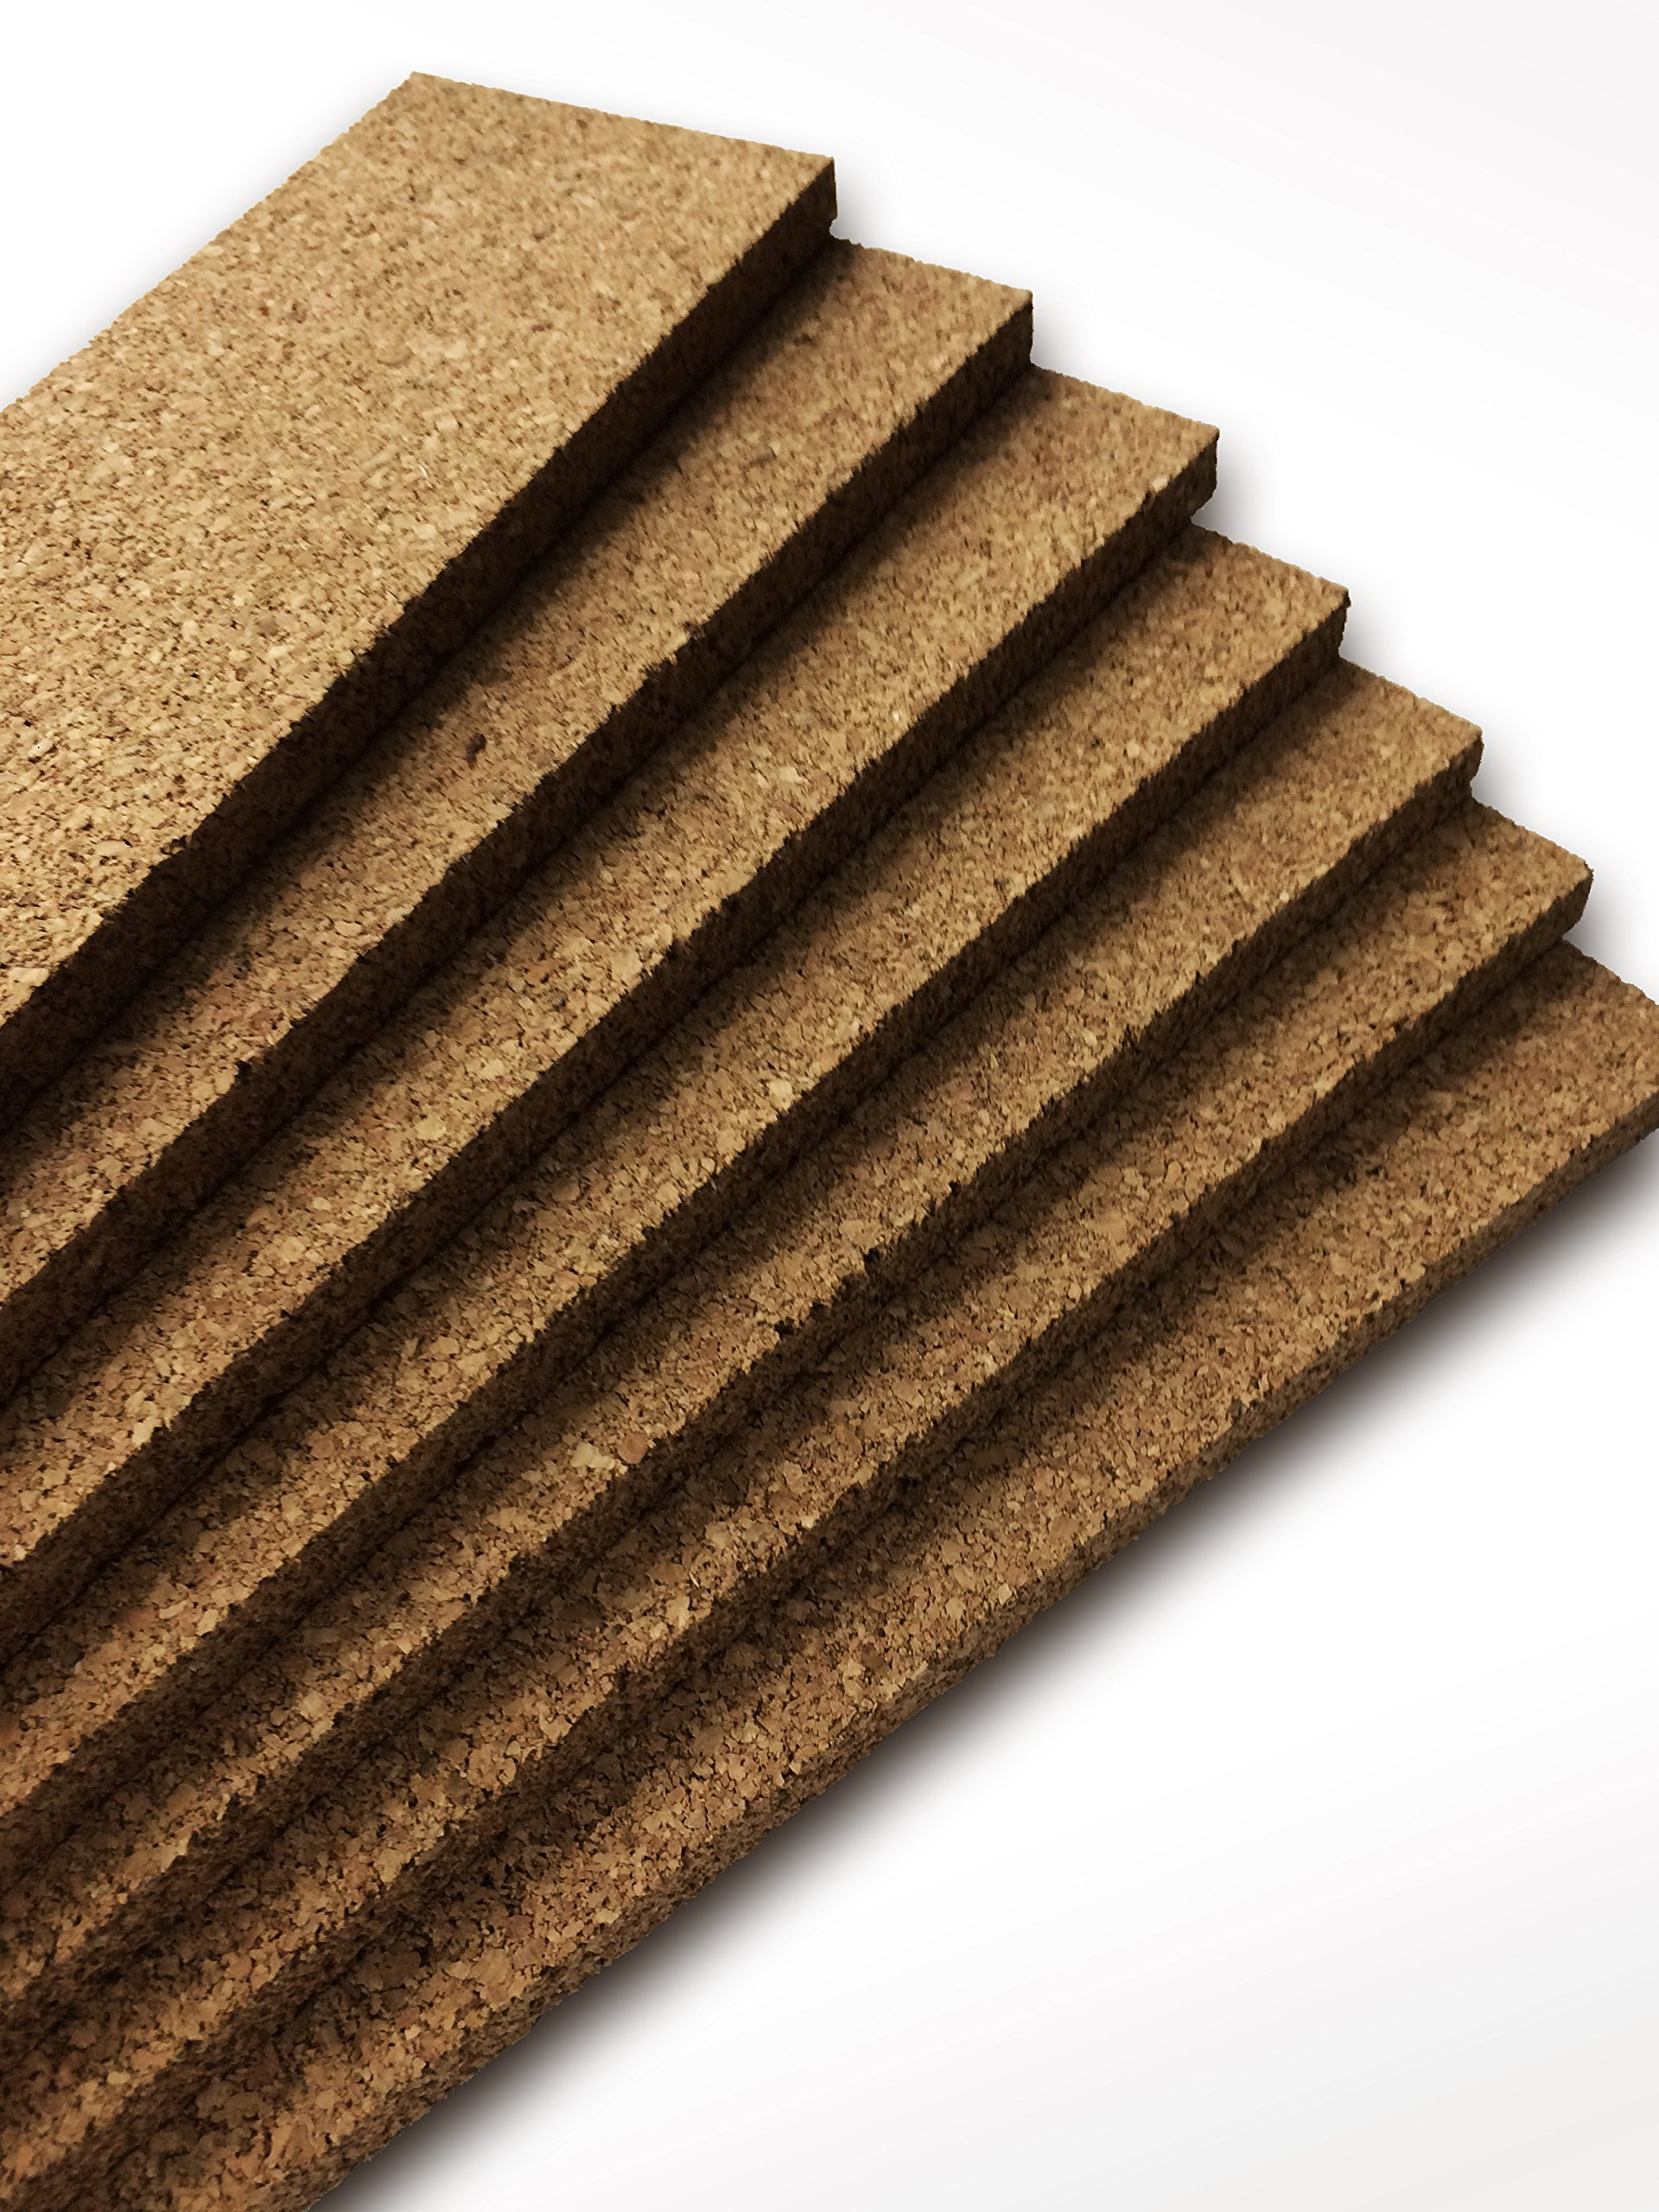 Thick Multi Purpose Cork Strips (8 Pack) Classroom Bulletin Board Bar 36x3.5x0.5 Inches by Jelinek Cork Group (Image #4)